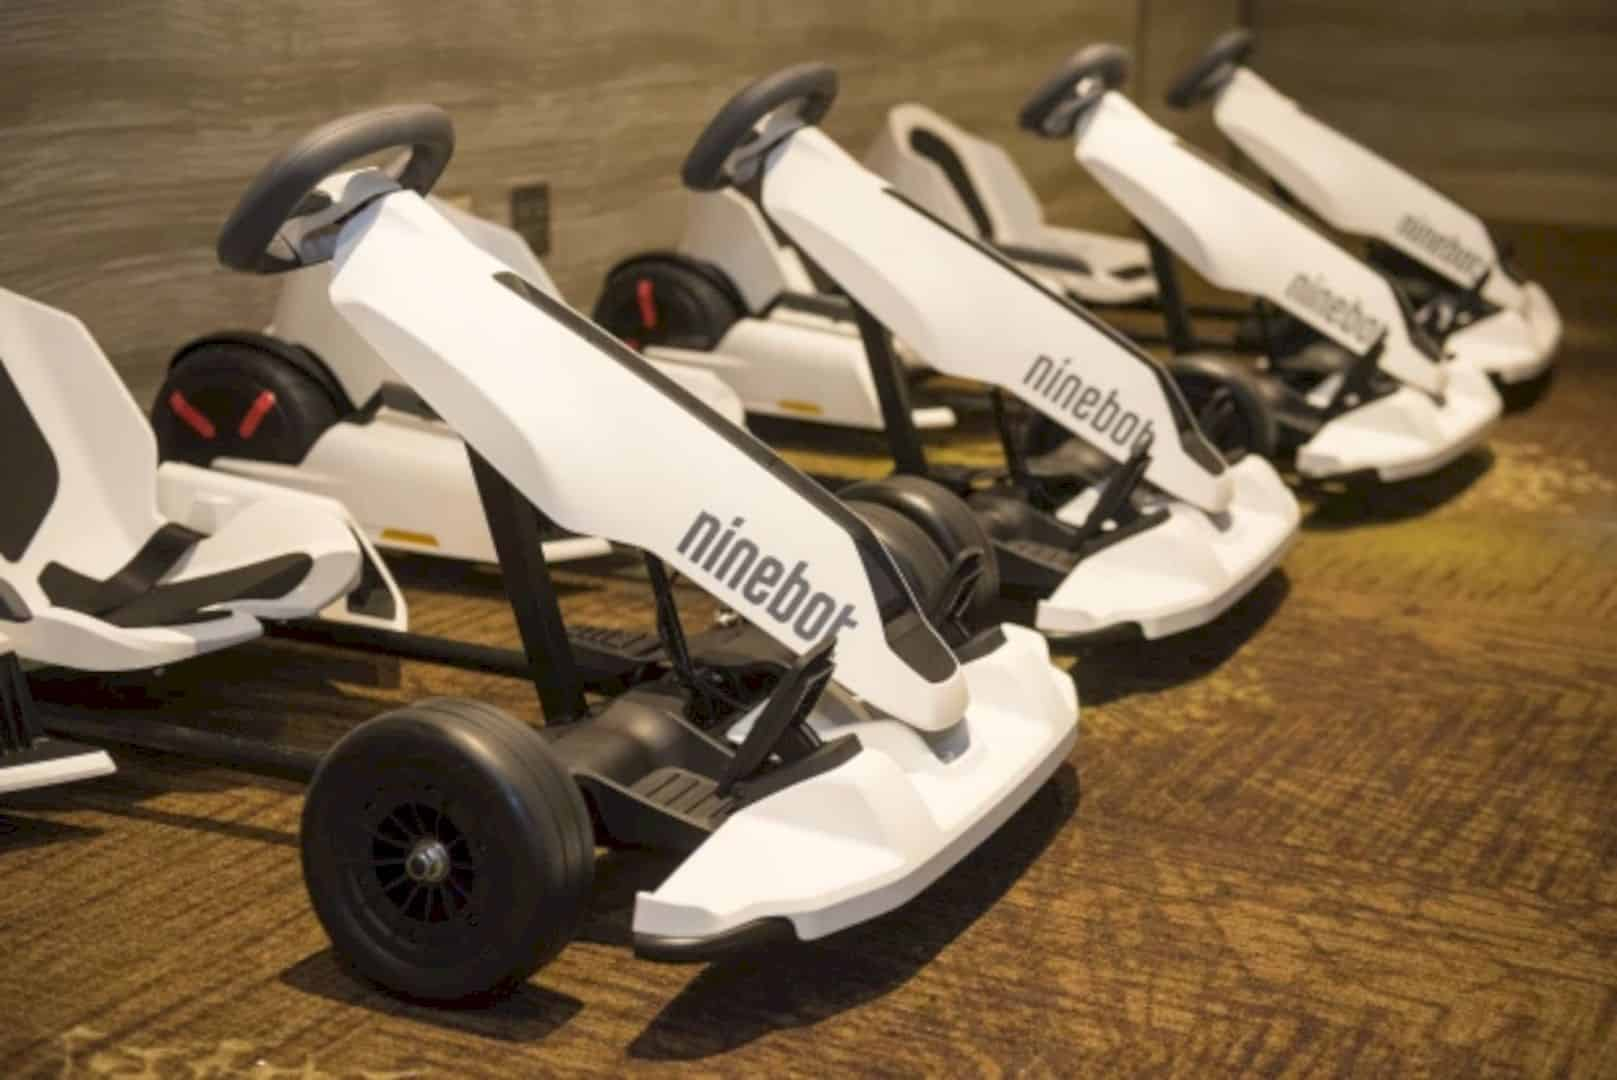 Ninebot Electric Gokart 6